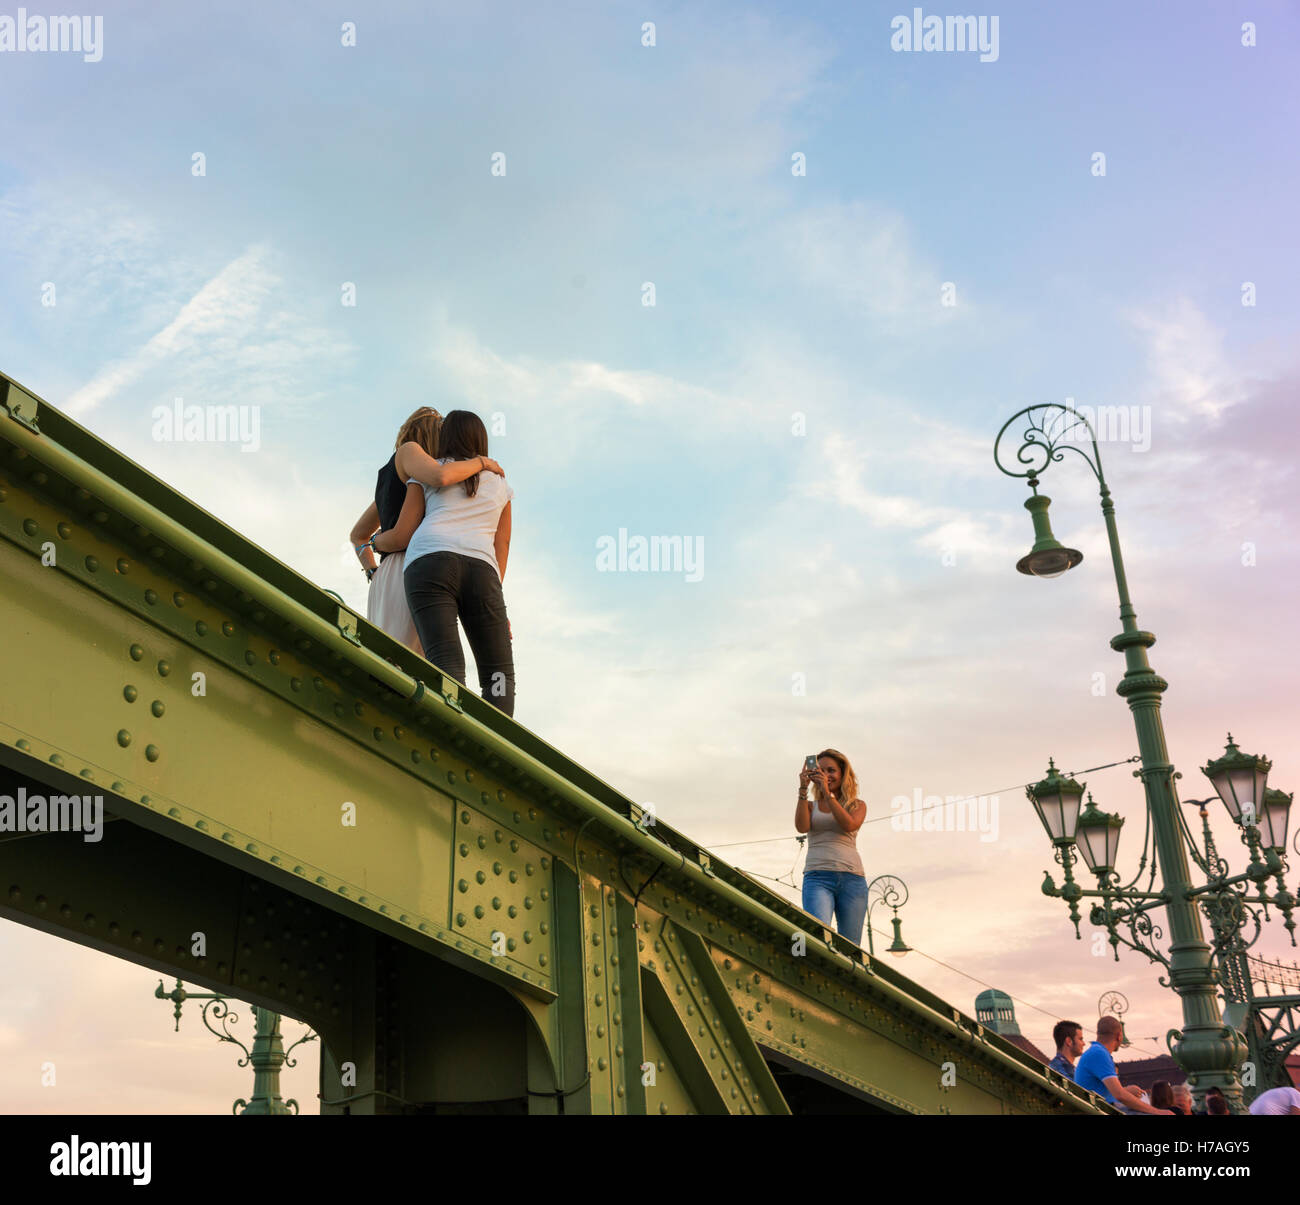 Budapest's Freedom Bridge was closed to traffic at the time so became a place where people gathered in the evening. - Stock Image